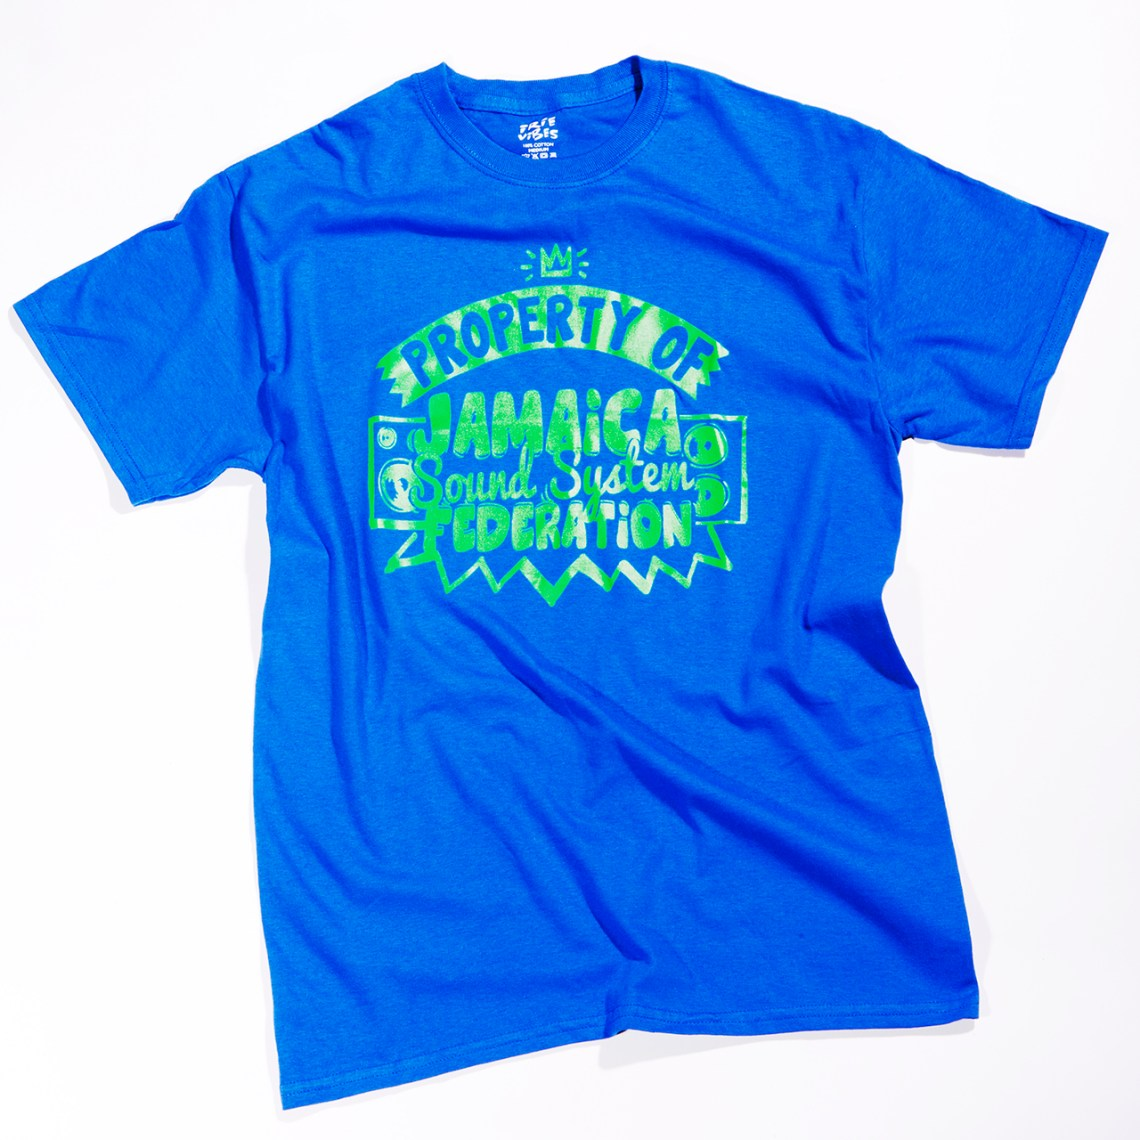 jamaica-sound-system-federation-tee-square